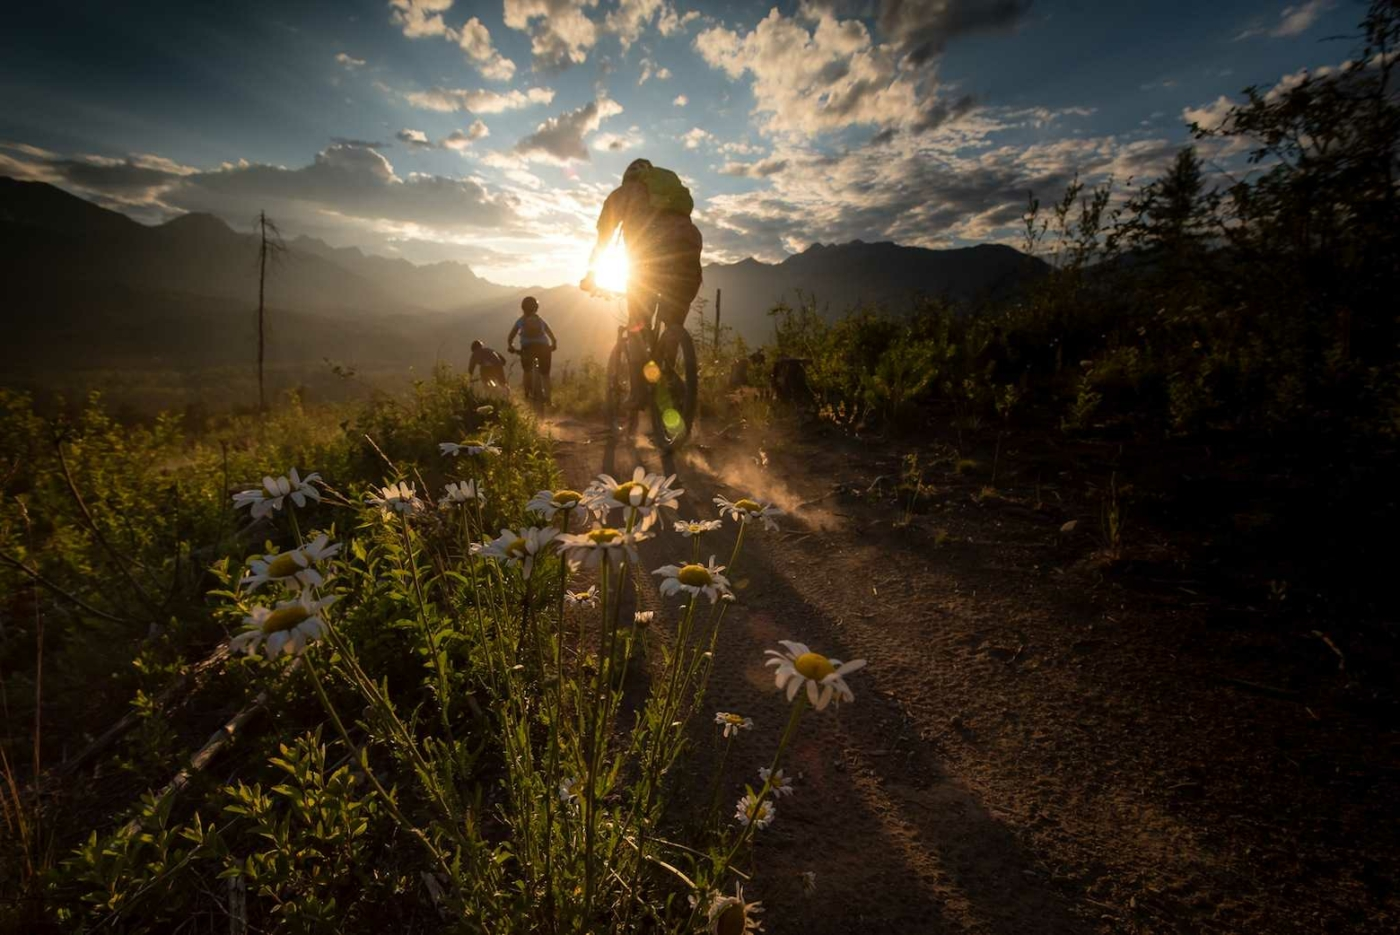 Three Mountain Bikers riding off into the sunset on dirt path with wildflowers at forefront of image